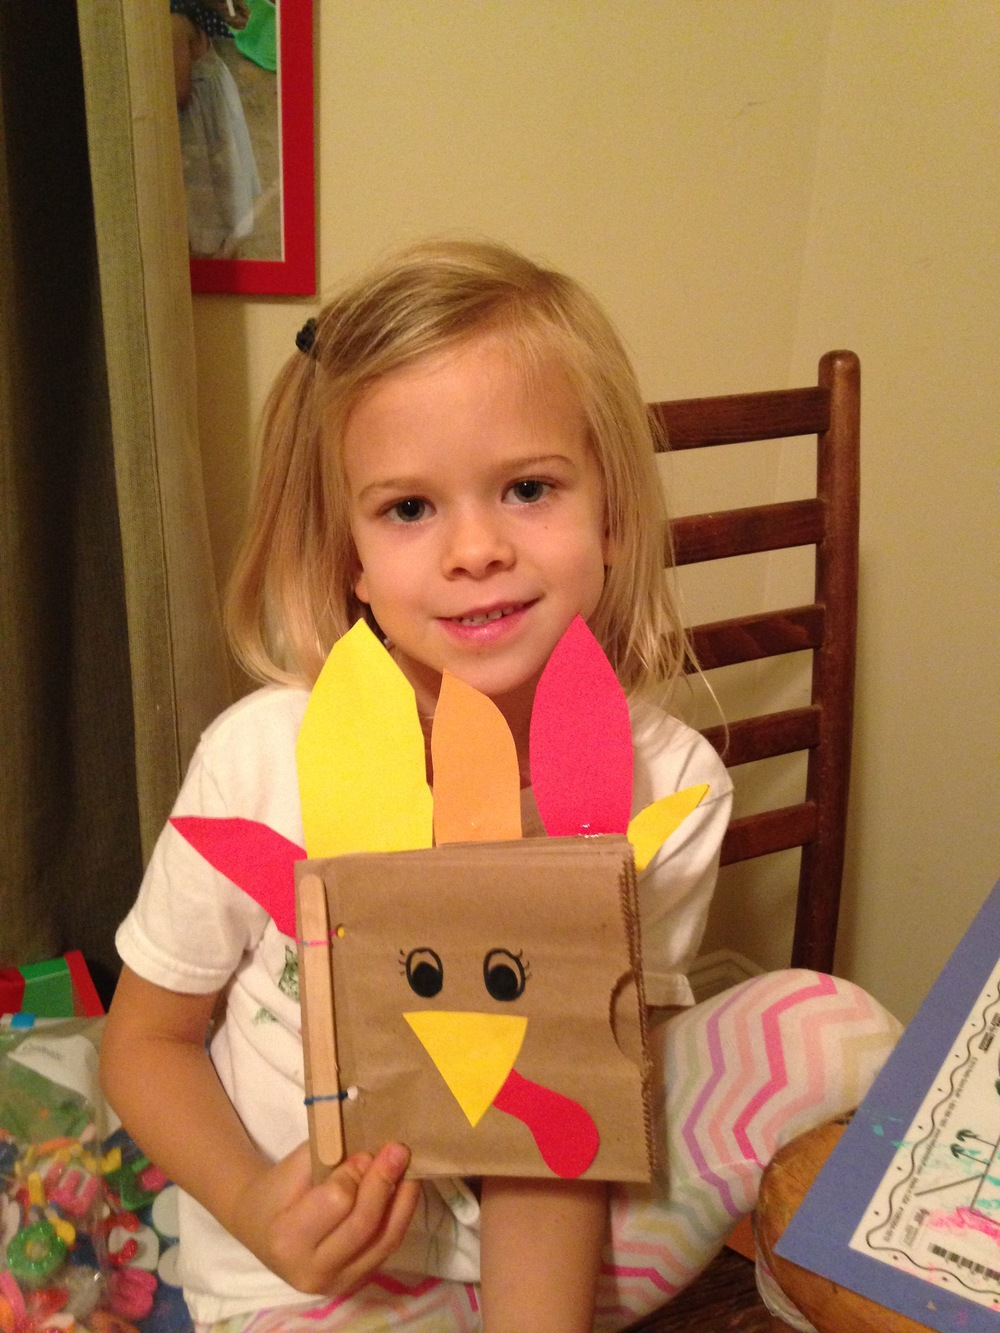 Fun thankfulness craft with sweet Lyla!